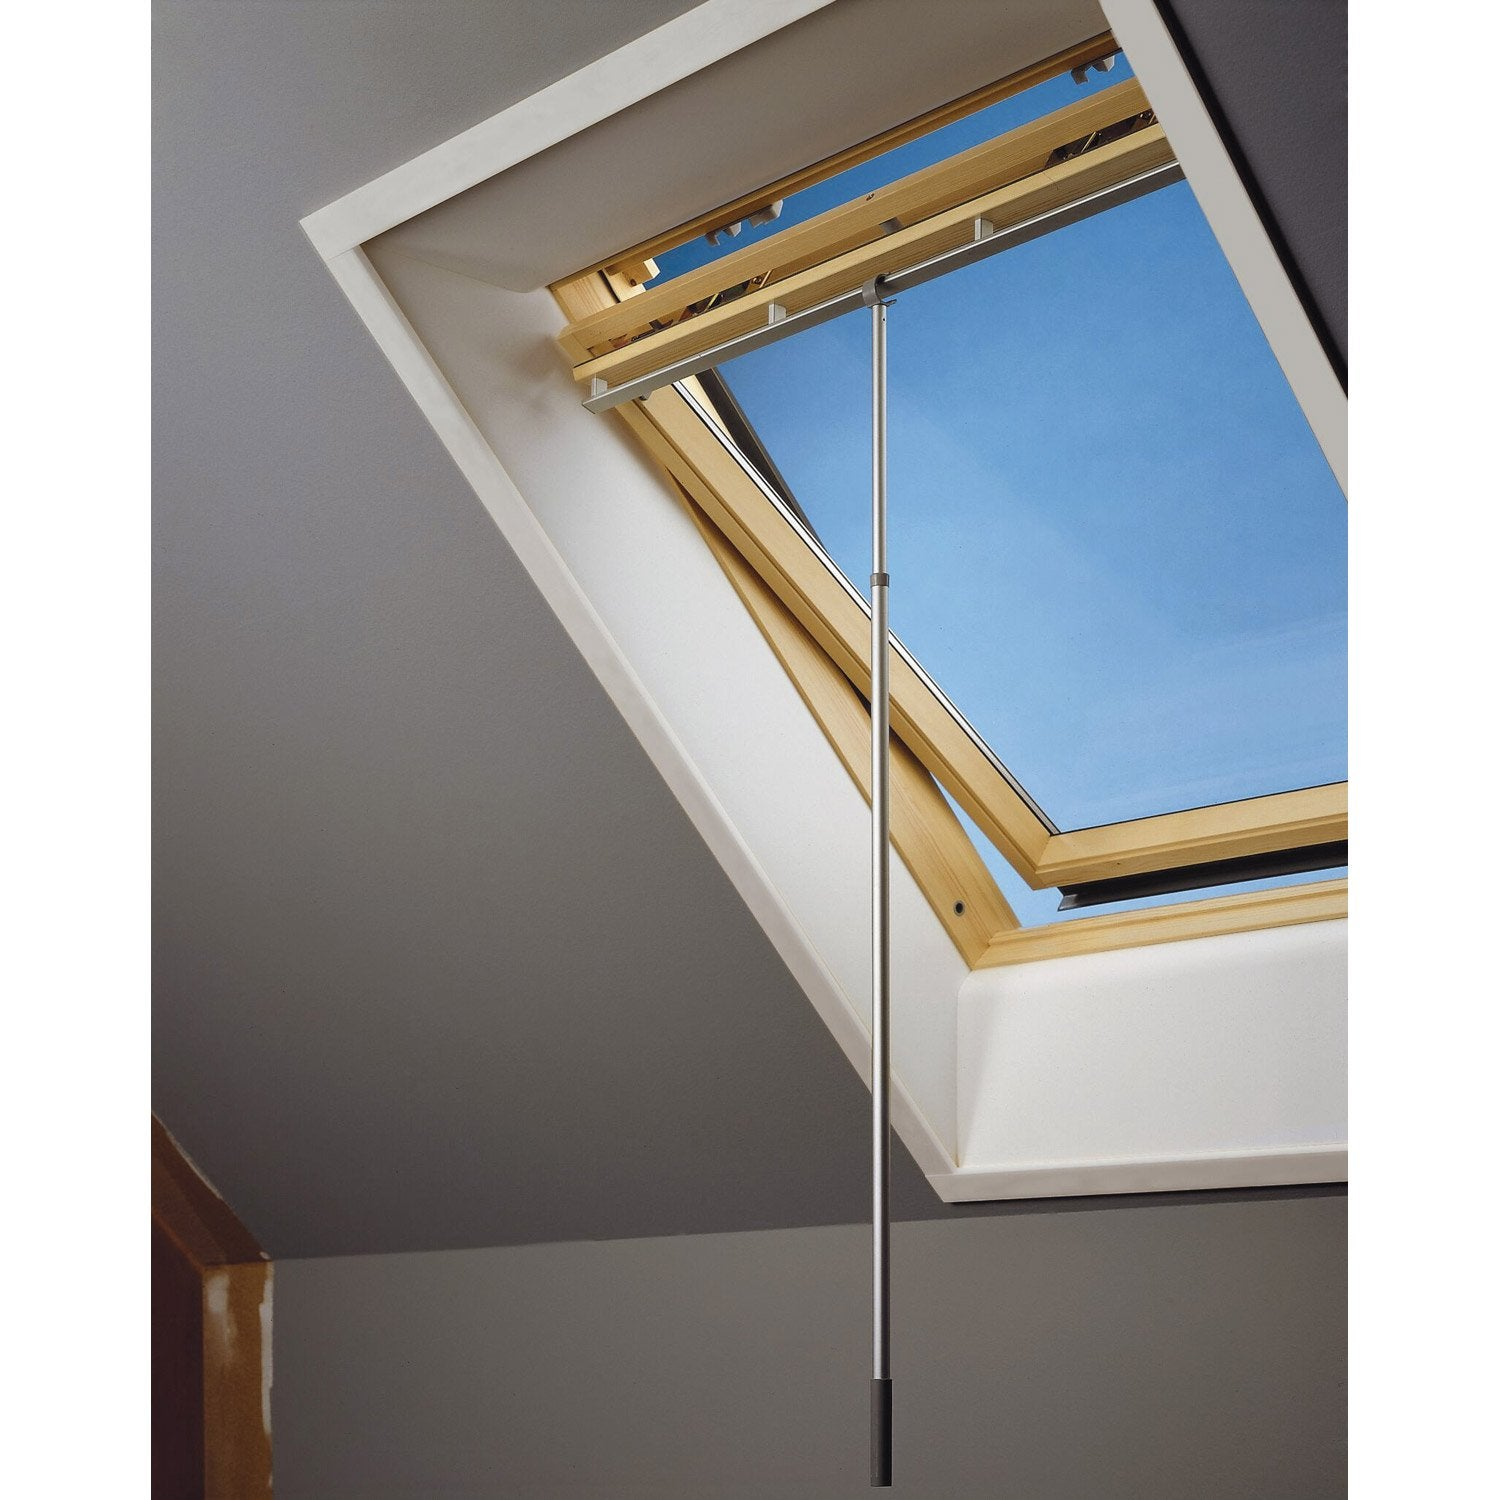 Canne rigide velux leroy merlin for Finestre velux leroy merlin